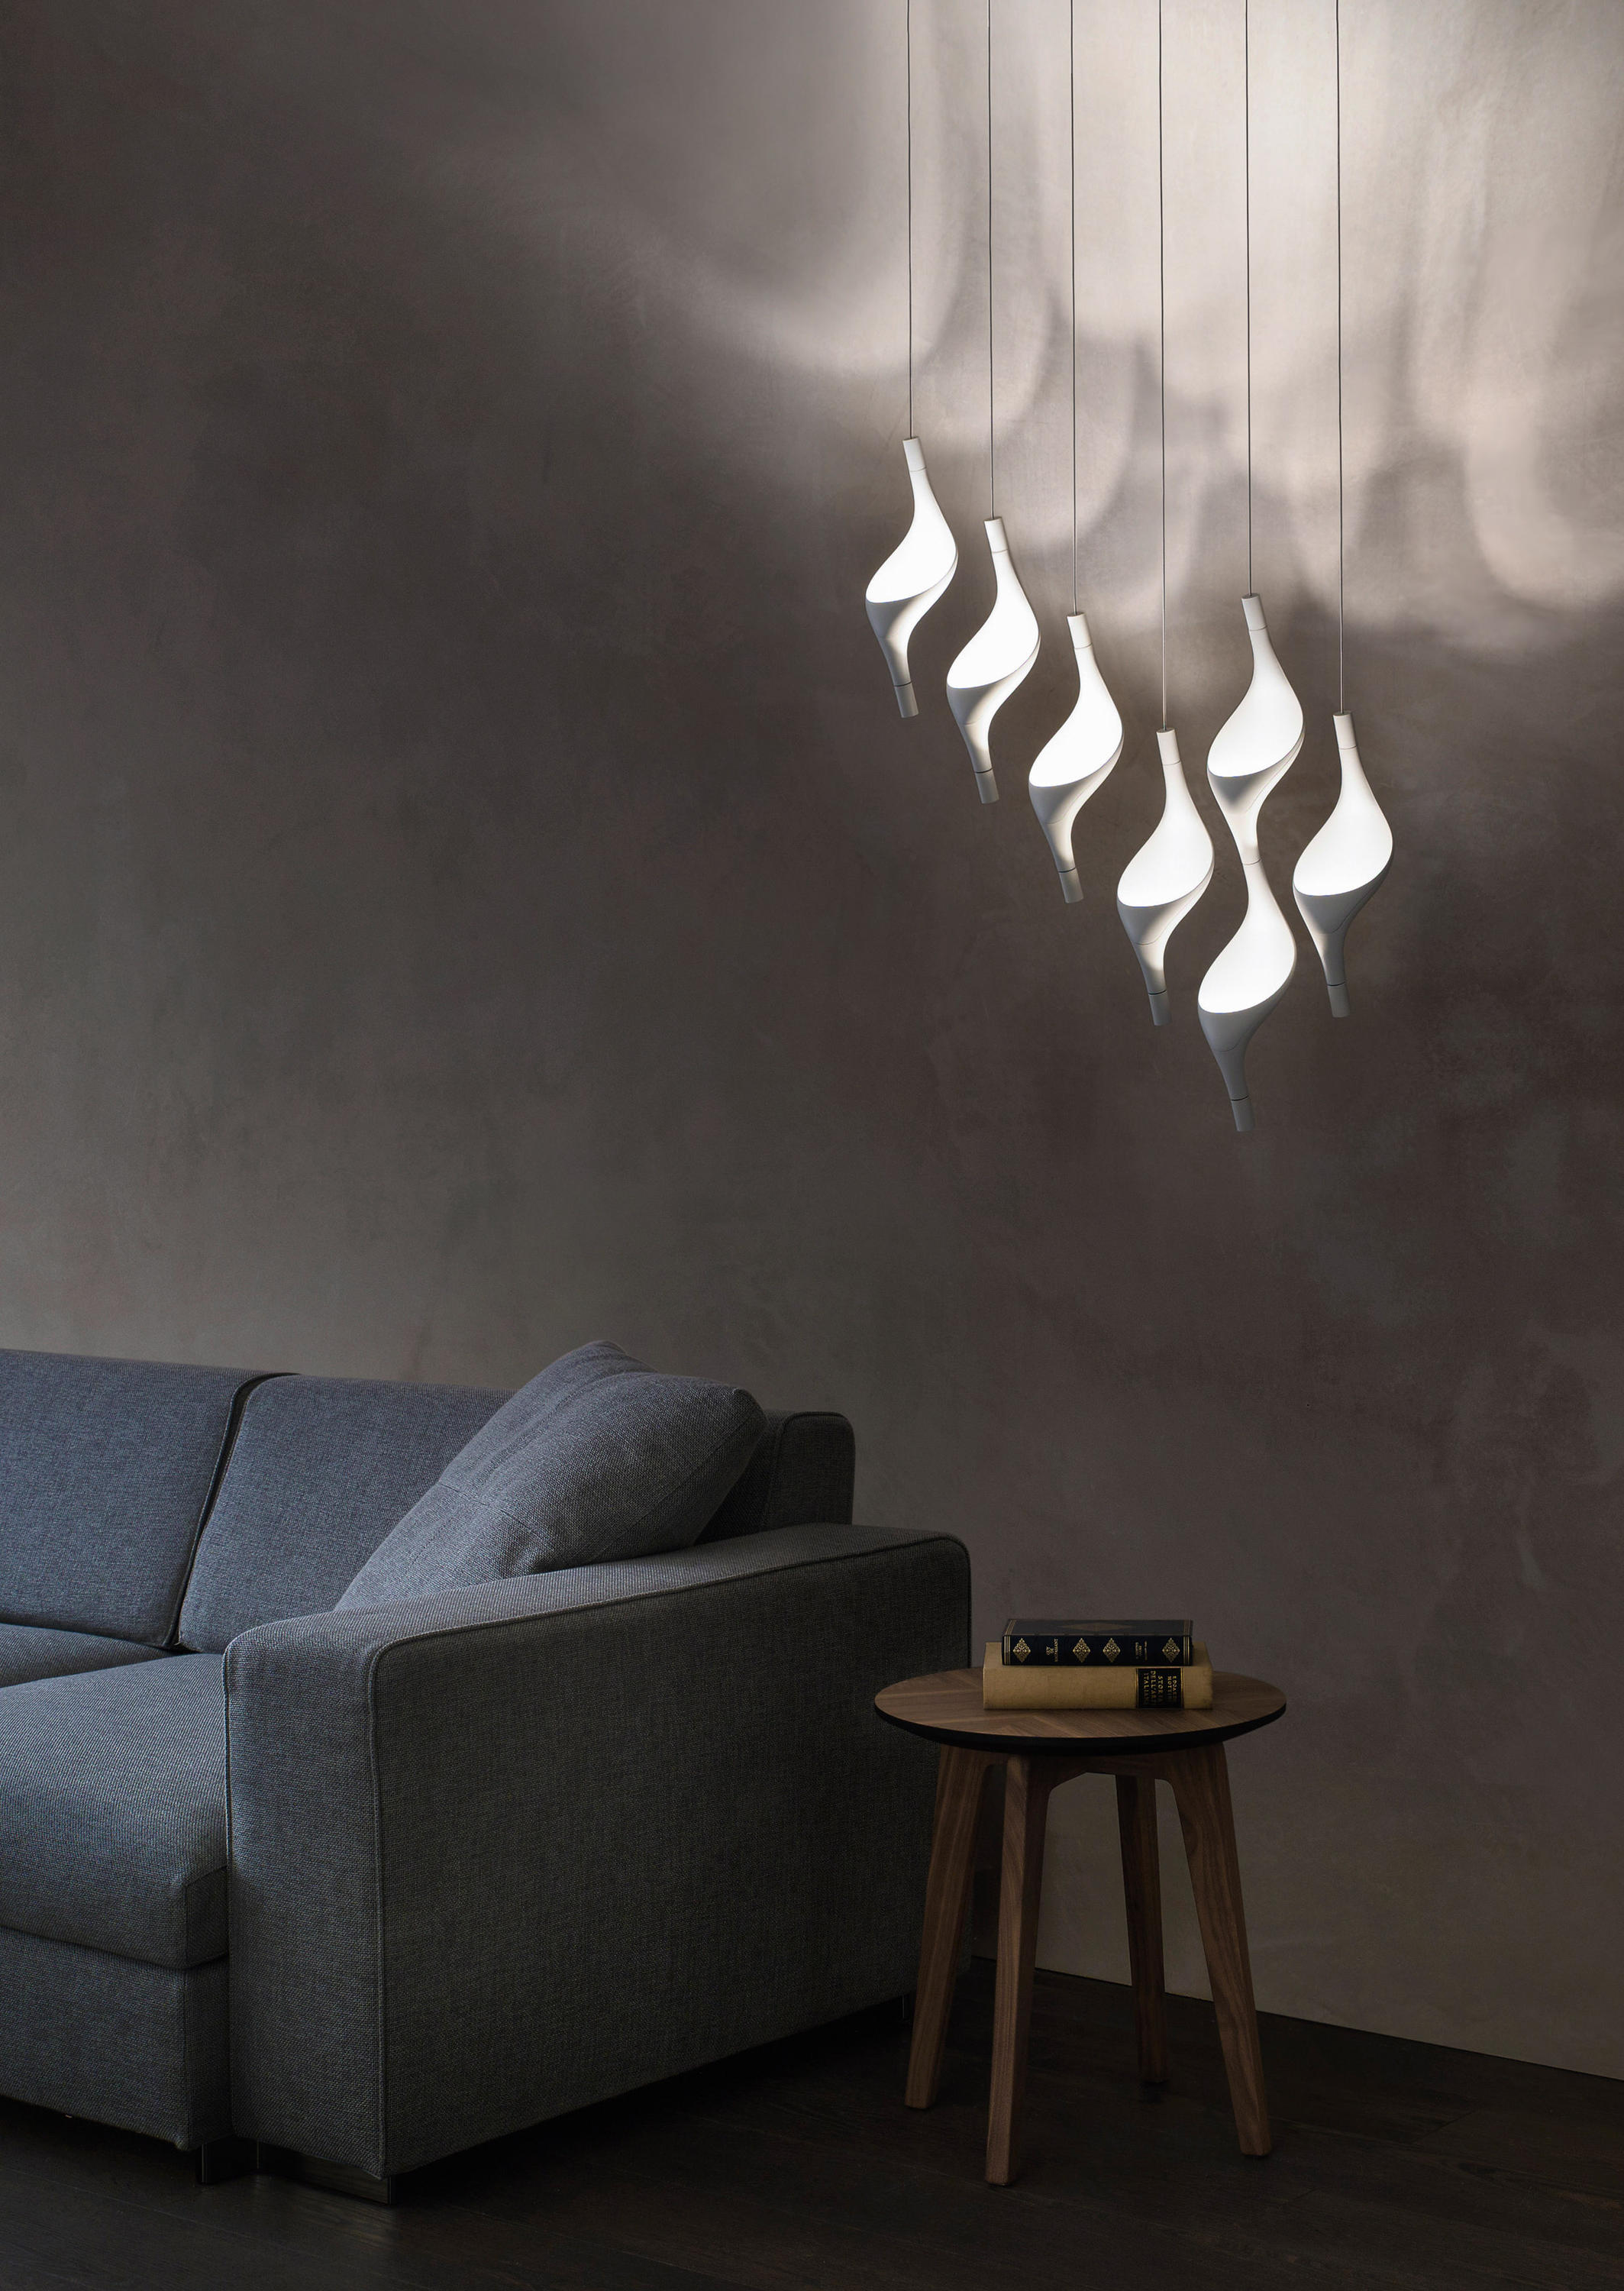 acqua general lighting from cini nils architonic. Black Bedroom Furniture Sets. Home Design Ideas